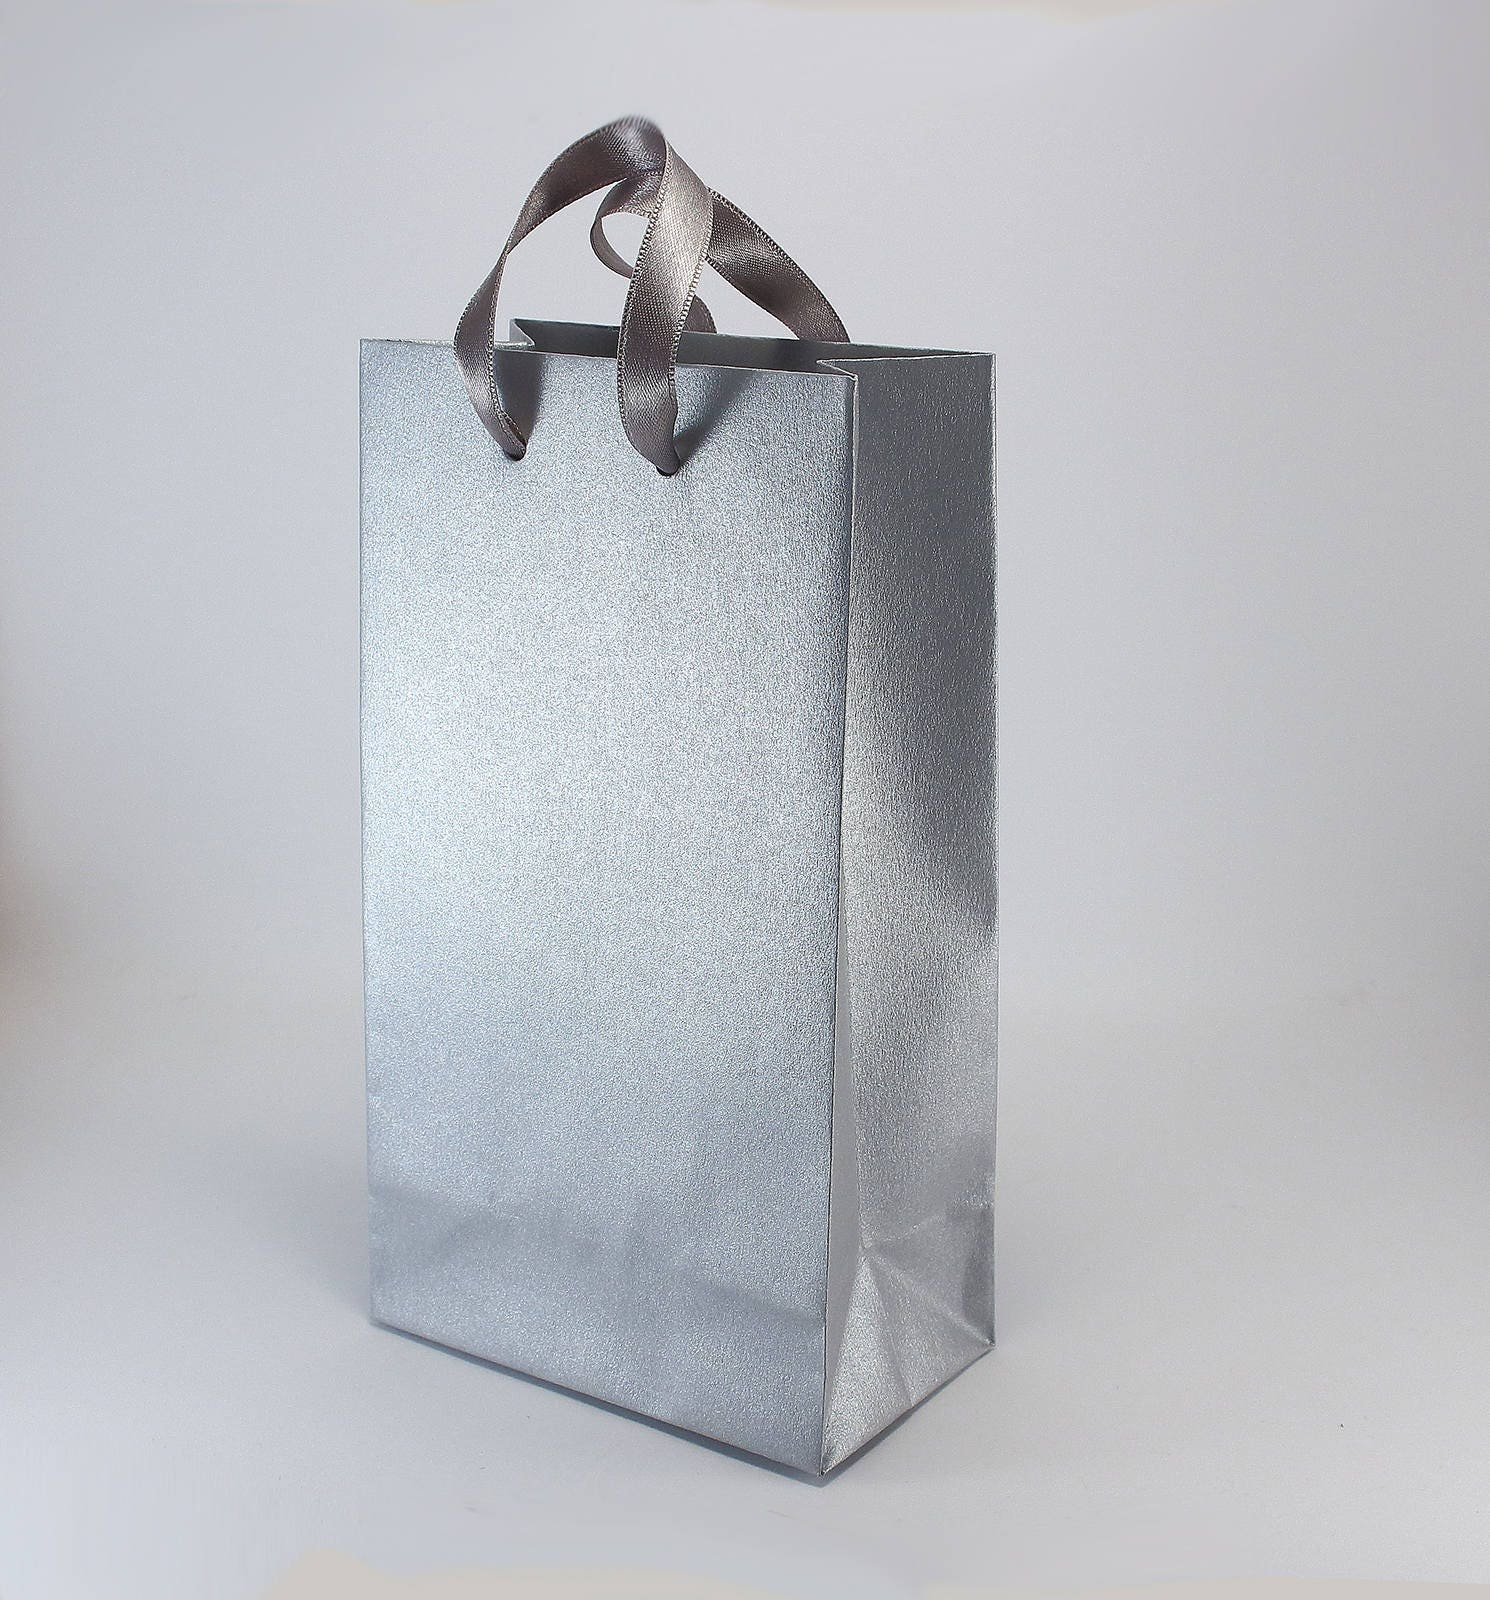 50 Wedding Favor Bags with Handles - SMALL paper bags - Silver Gift ...